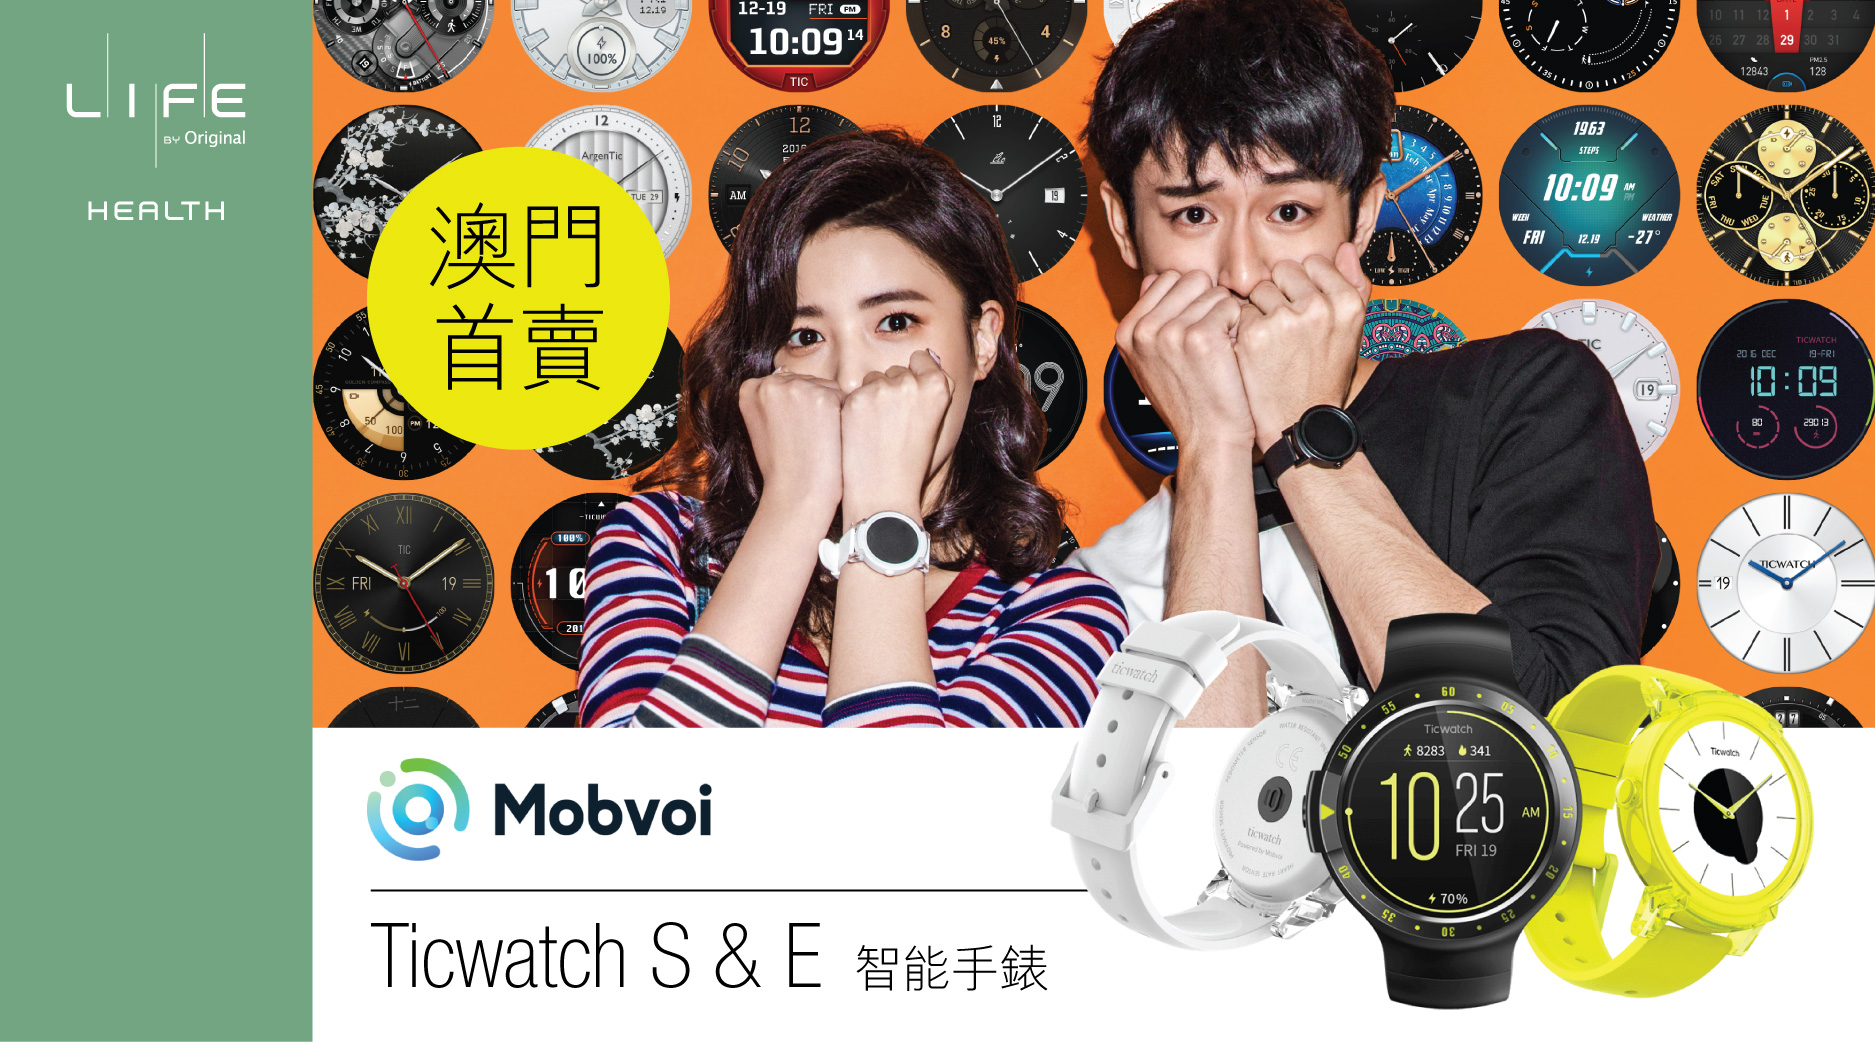 NA02_Mobvoi Tic Watch_900x500_01-01.jpg